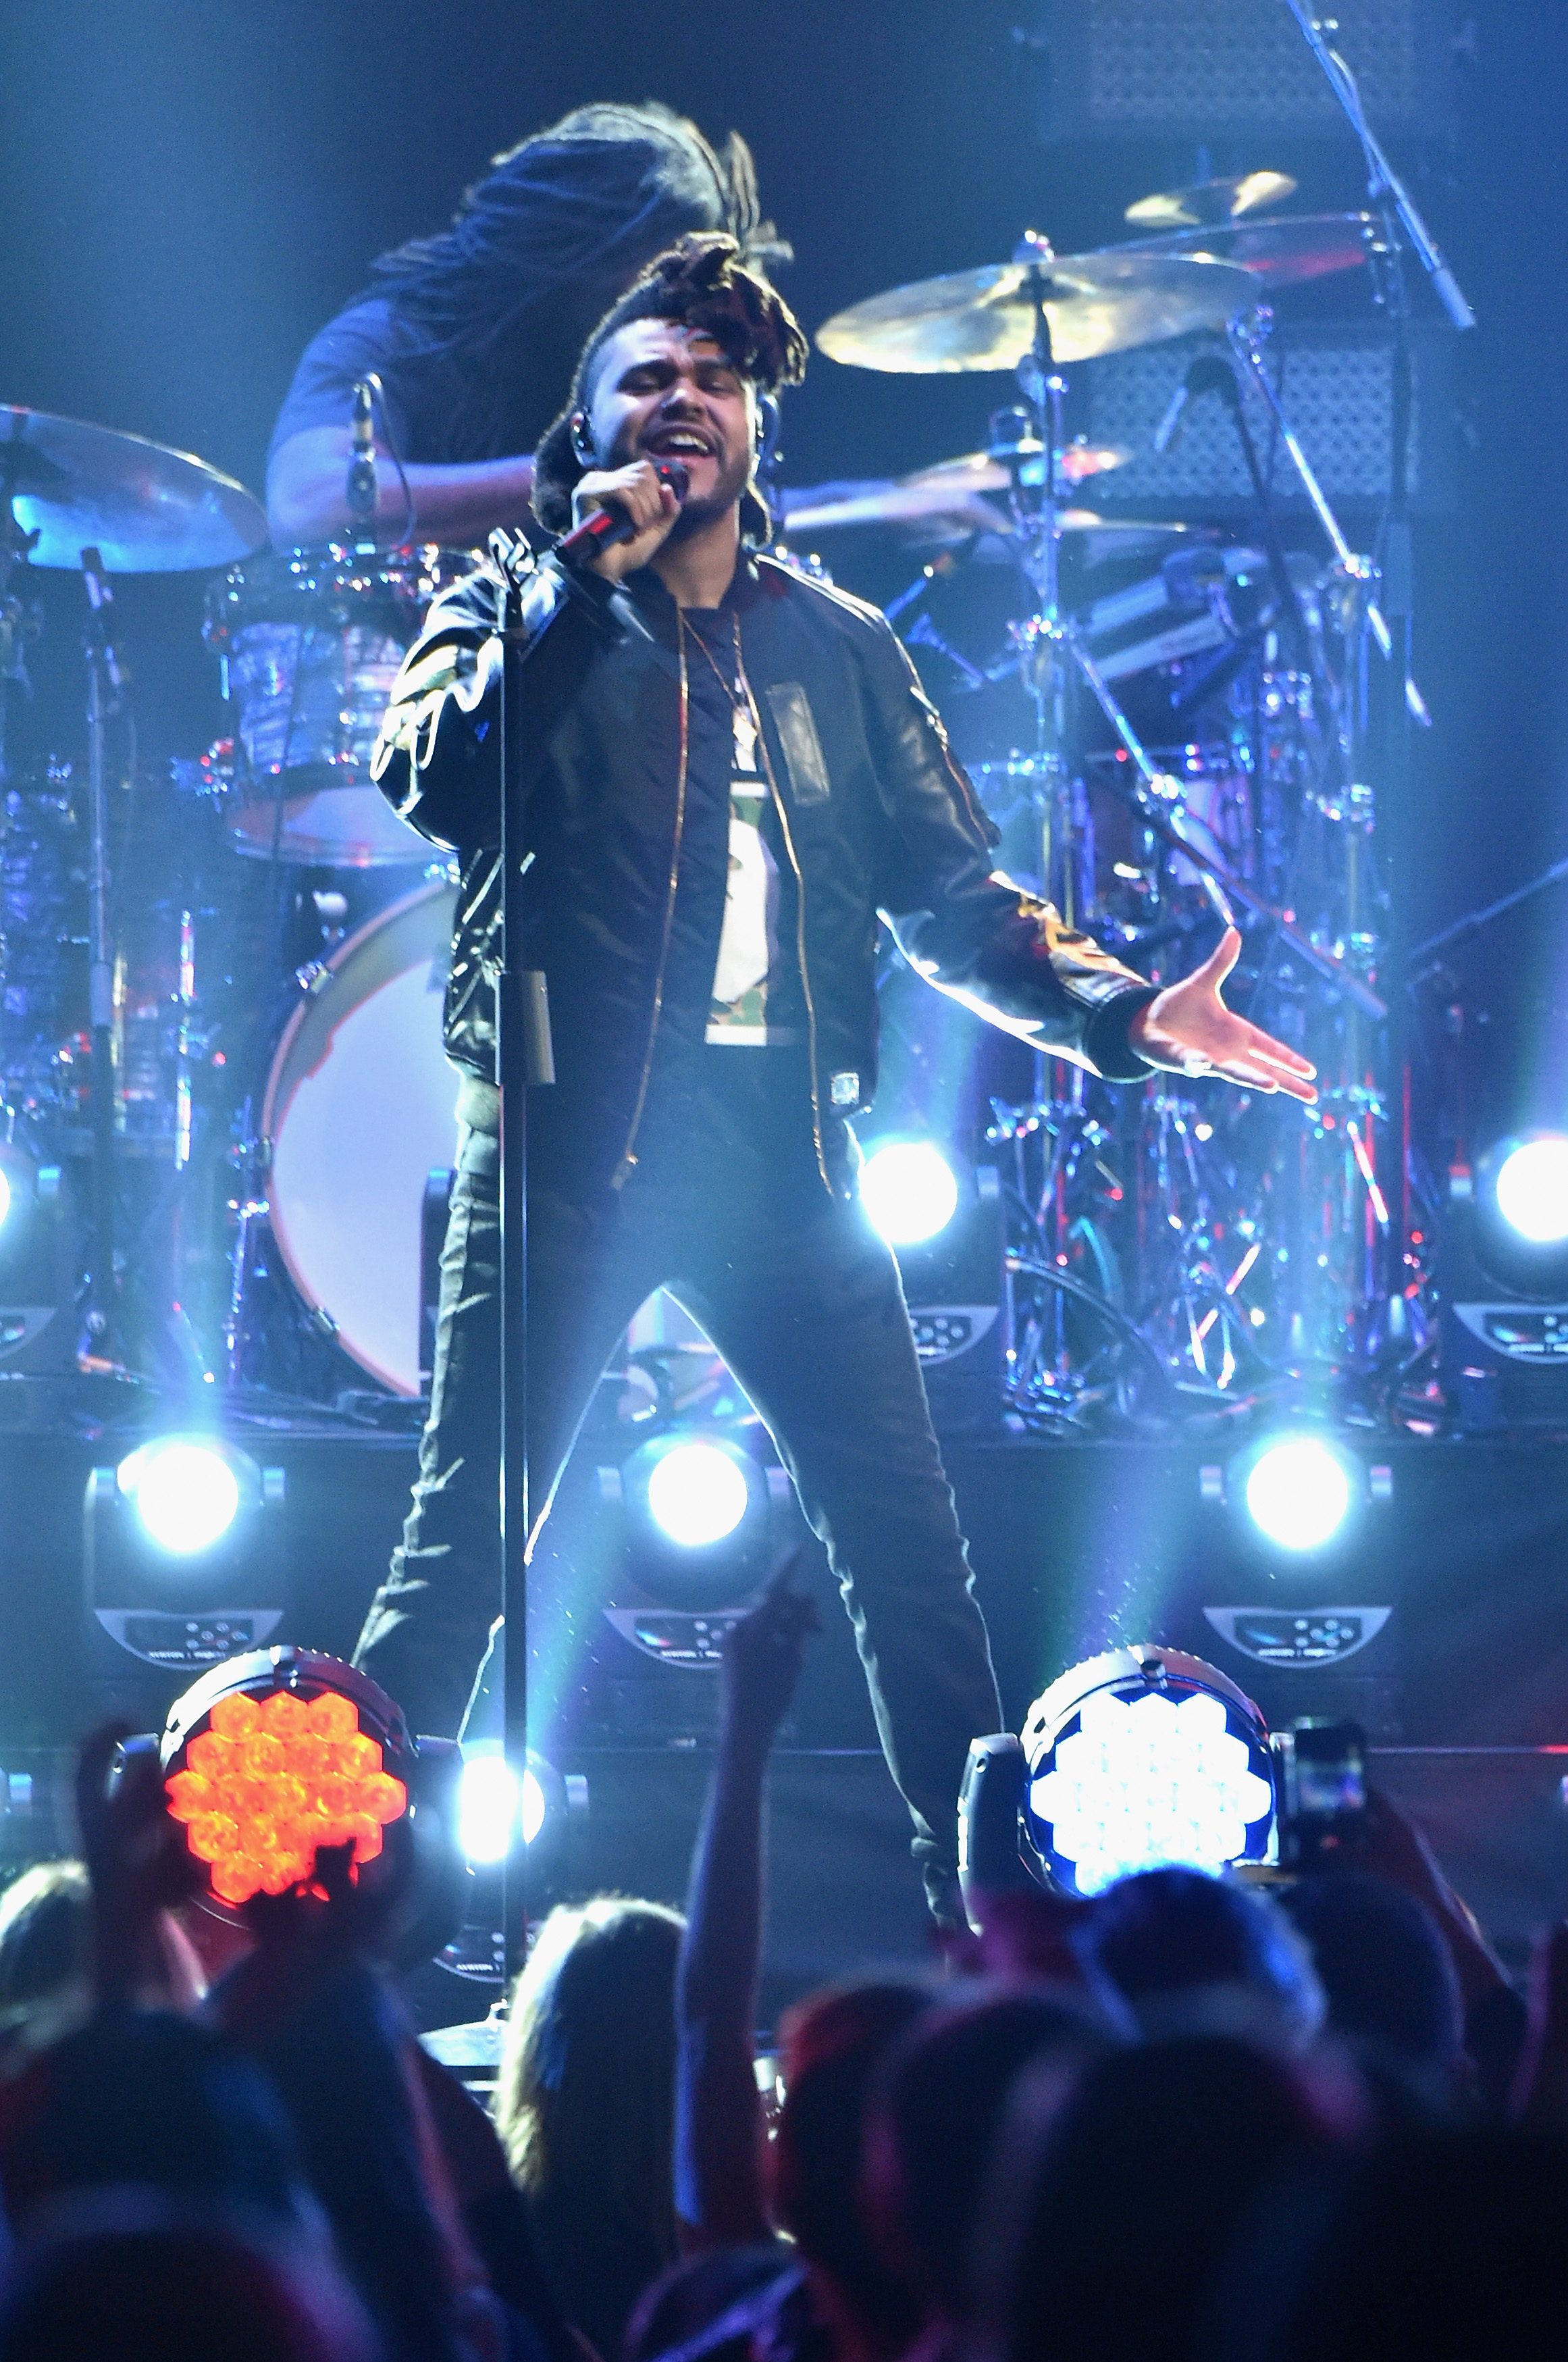 The Weeknd performs onstage during Z100's Jingle Ball 2015 at Madison Square Garden on December 11, 2015 in New York City